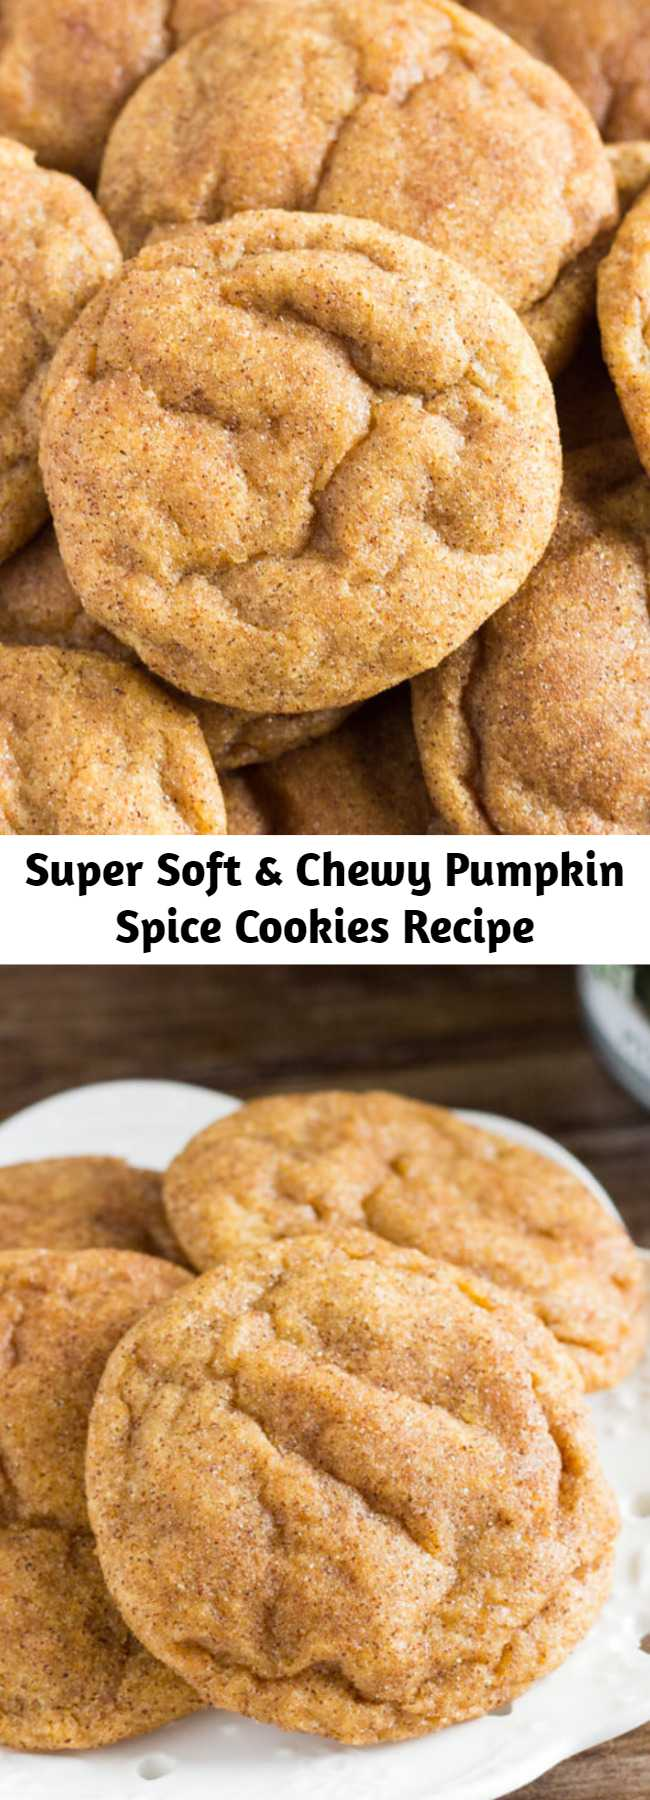 Super Soft & Chewy Pumpkin Spice Cookies Recipe - These pumpkin spice cookies are soft, chewy and perfect for fall. They're filled with flavor thanks to the pumpkin, vanilla extract, & fall spices. Then they're rolled in cinnamon sugar for a delicious coating that'll remind you of snickerdoodles.